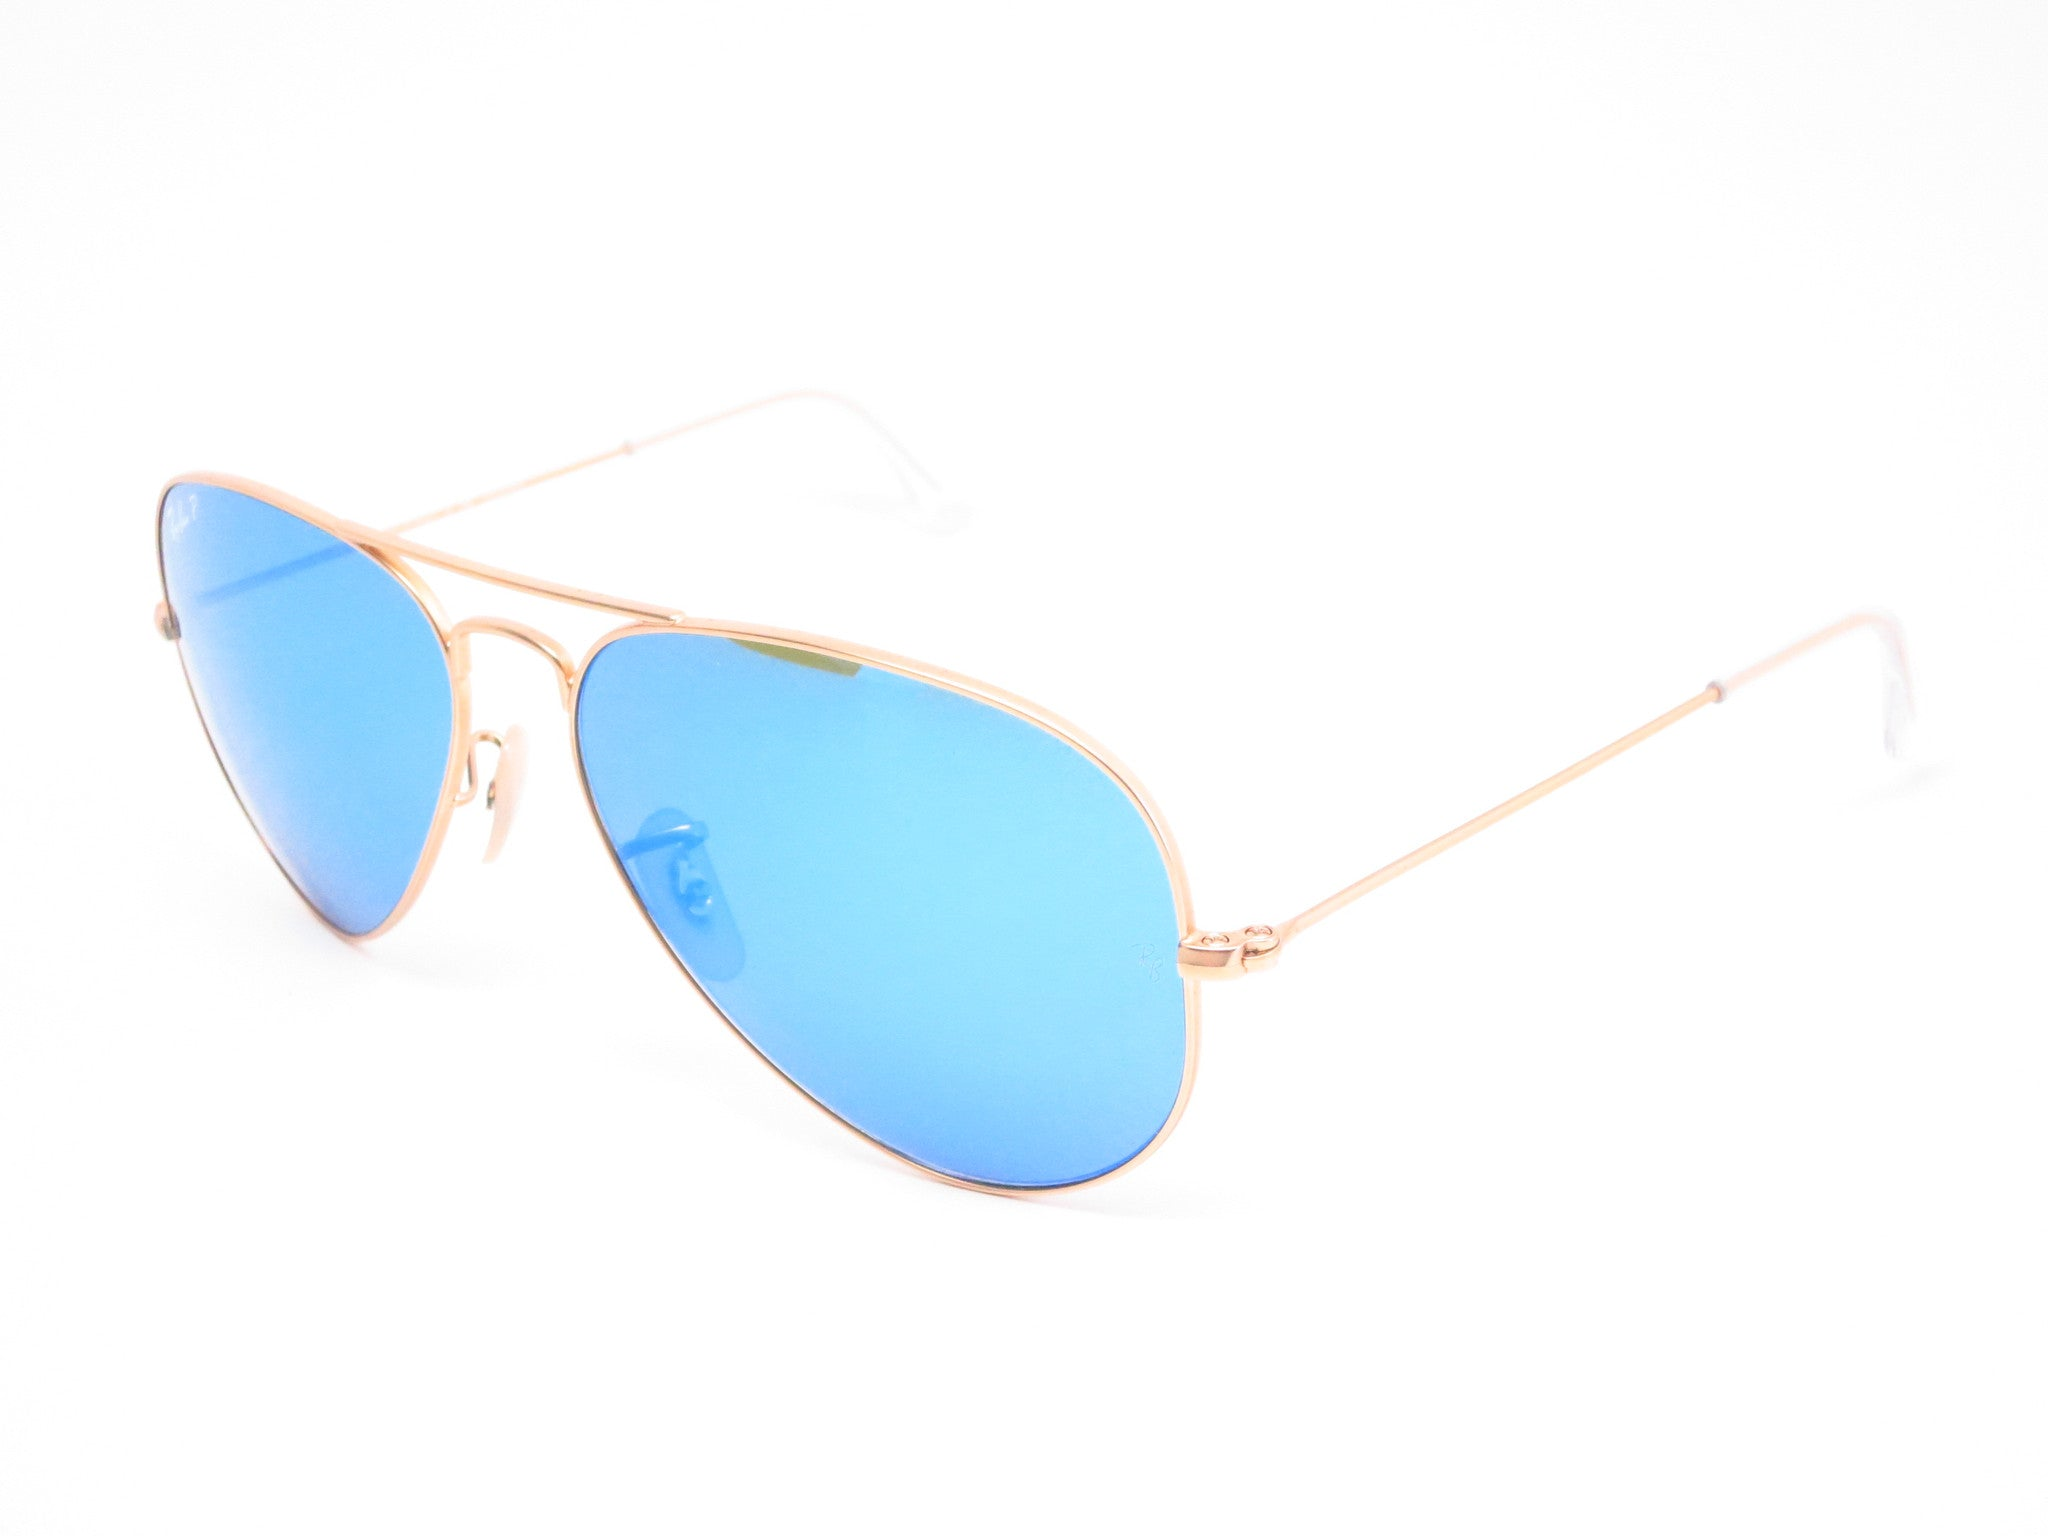 ee0a3c117f Ray-Ban RB 3025 Aviator 112 2L Matte Gold Sunglasses - Eye Heart Shades